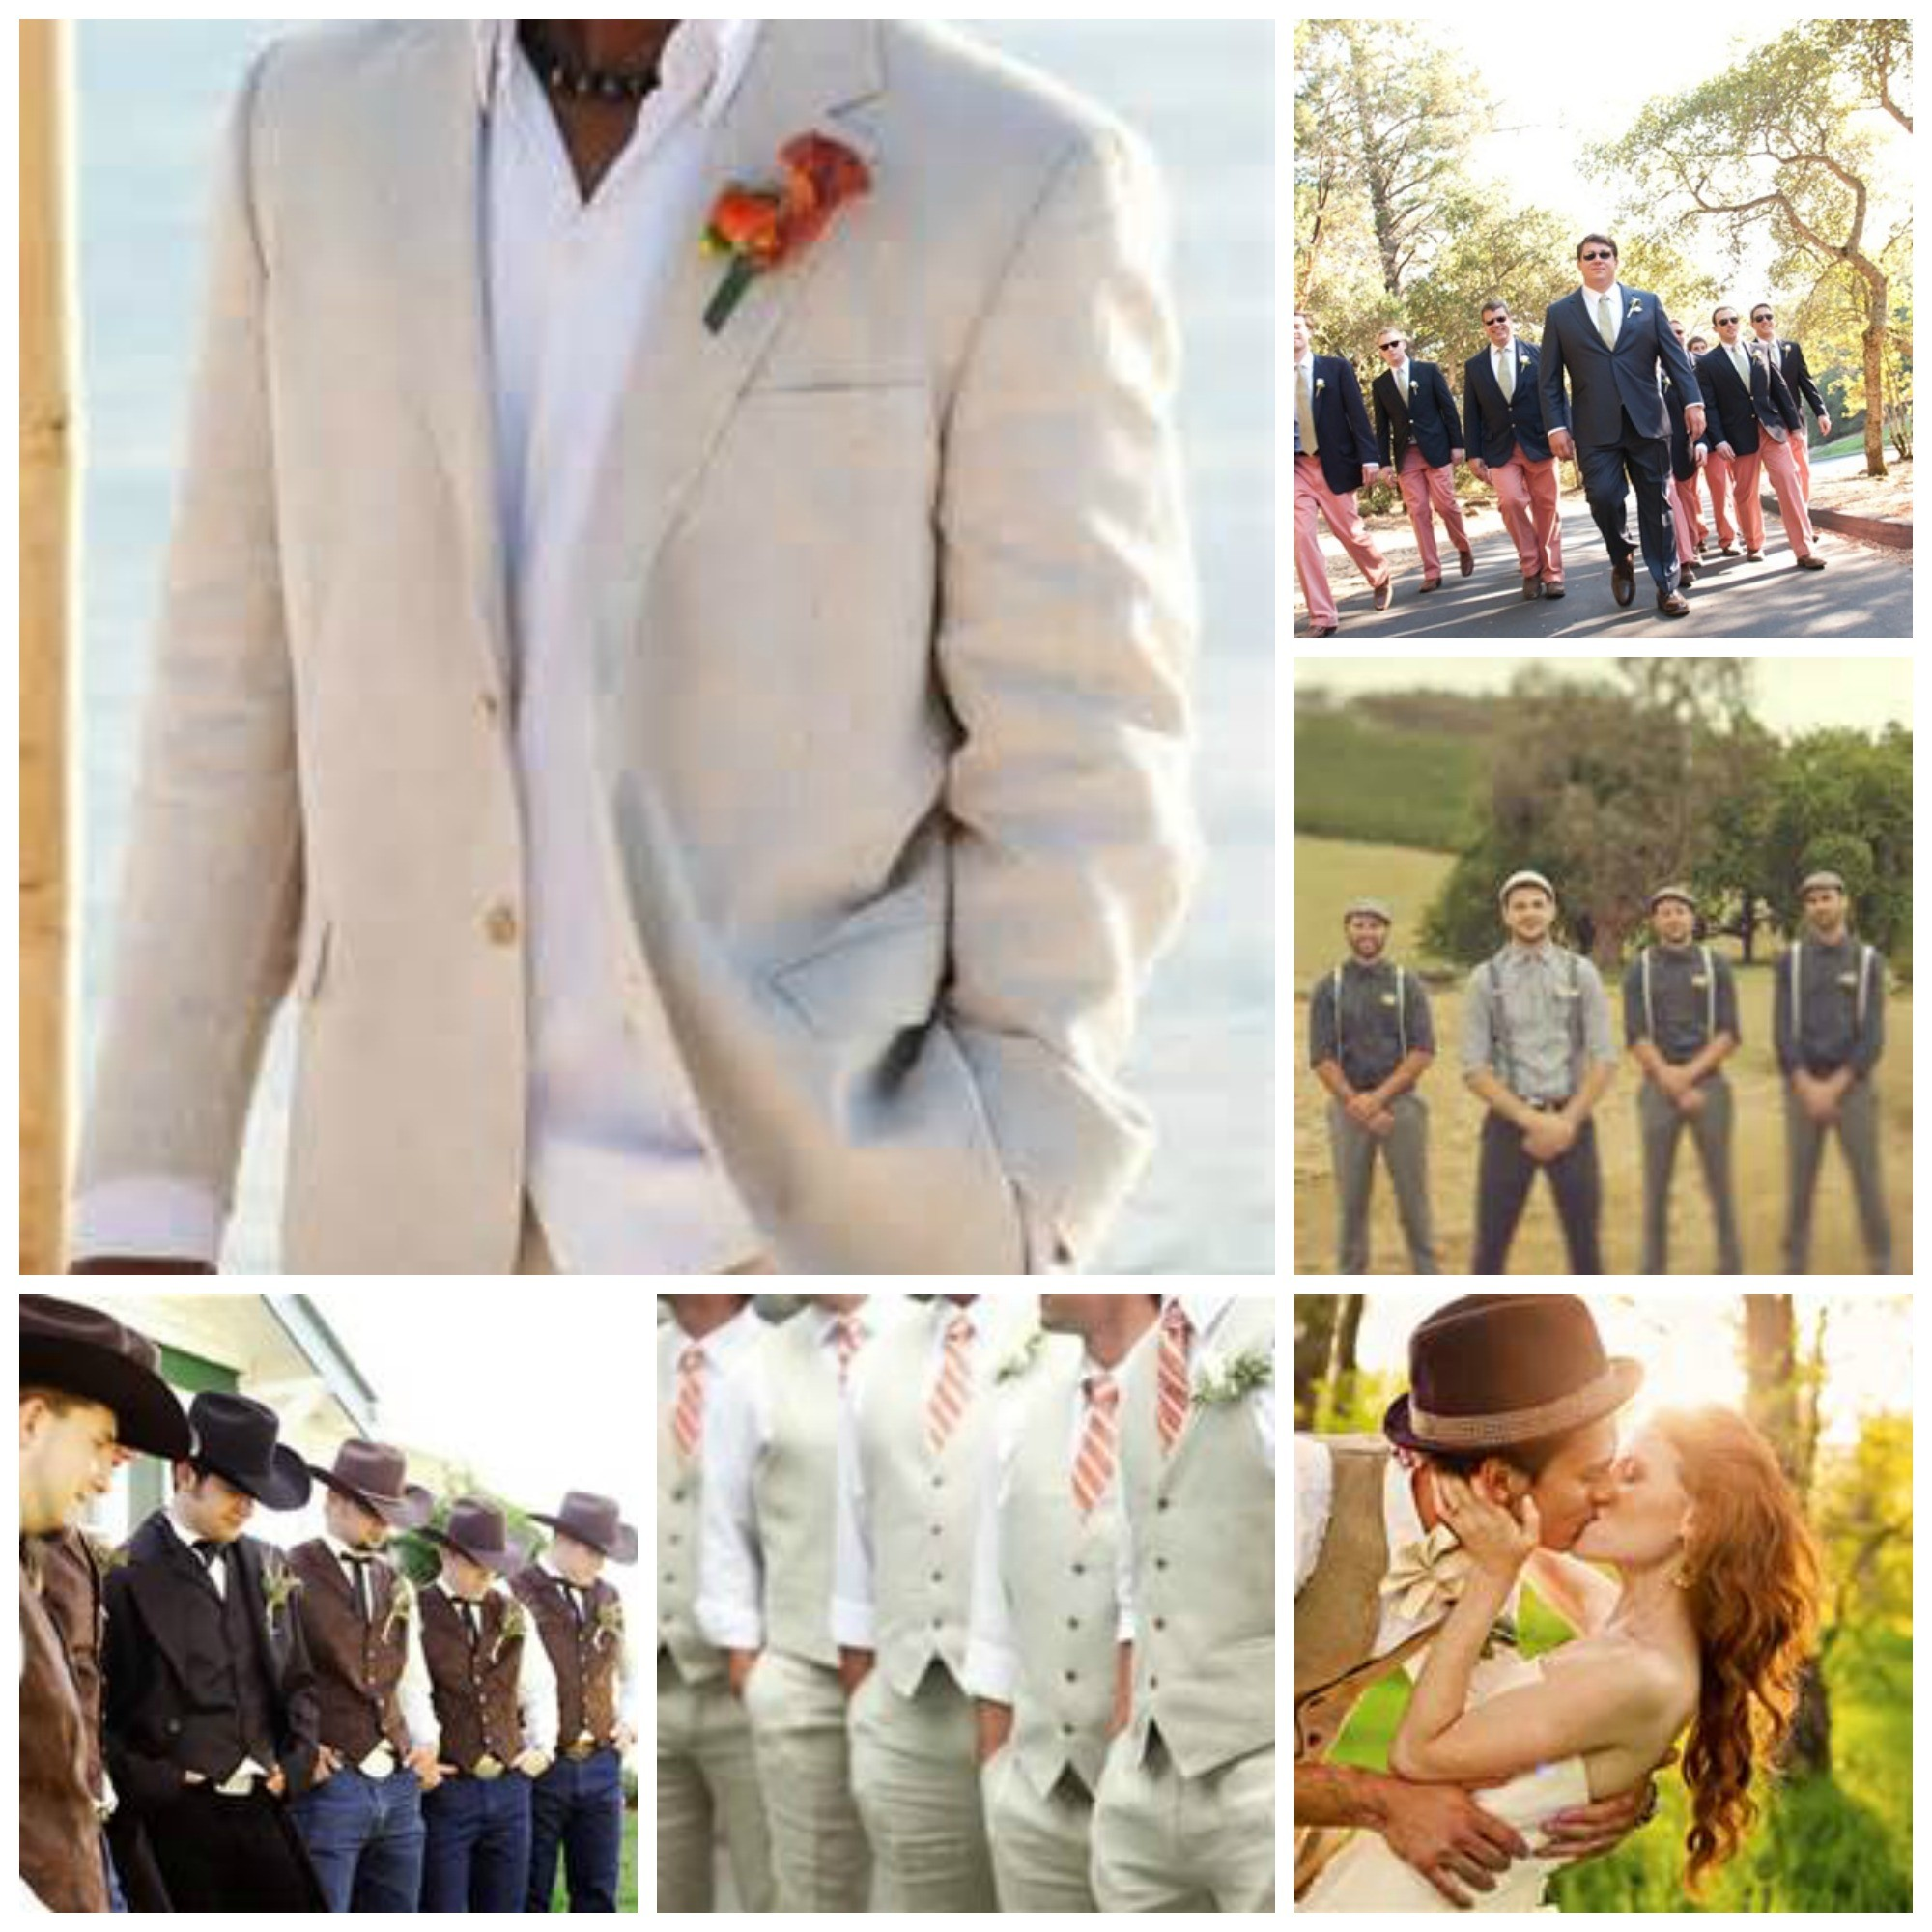 Grooms Attire for The Wedding, Tux vs Suit - Dinner 4 Two